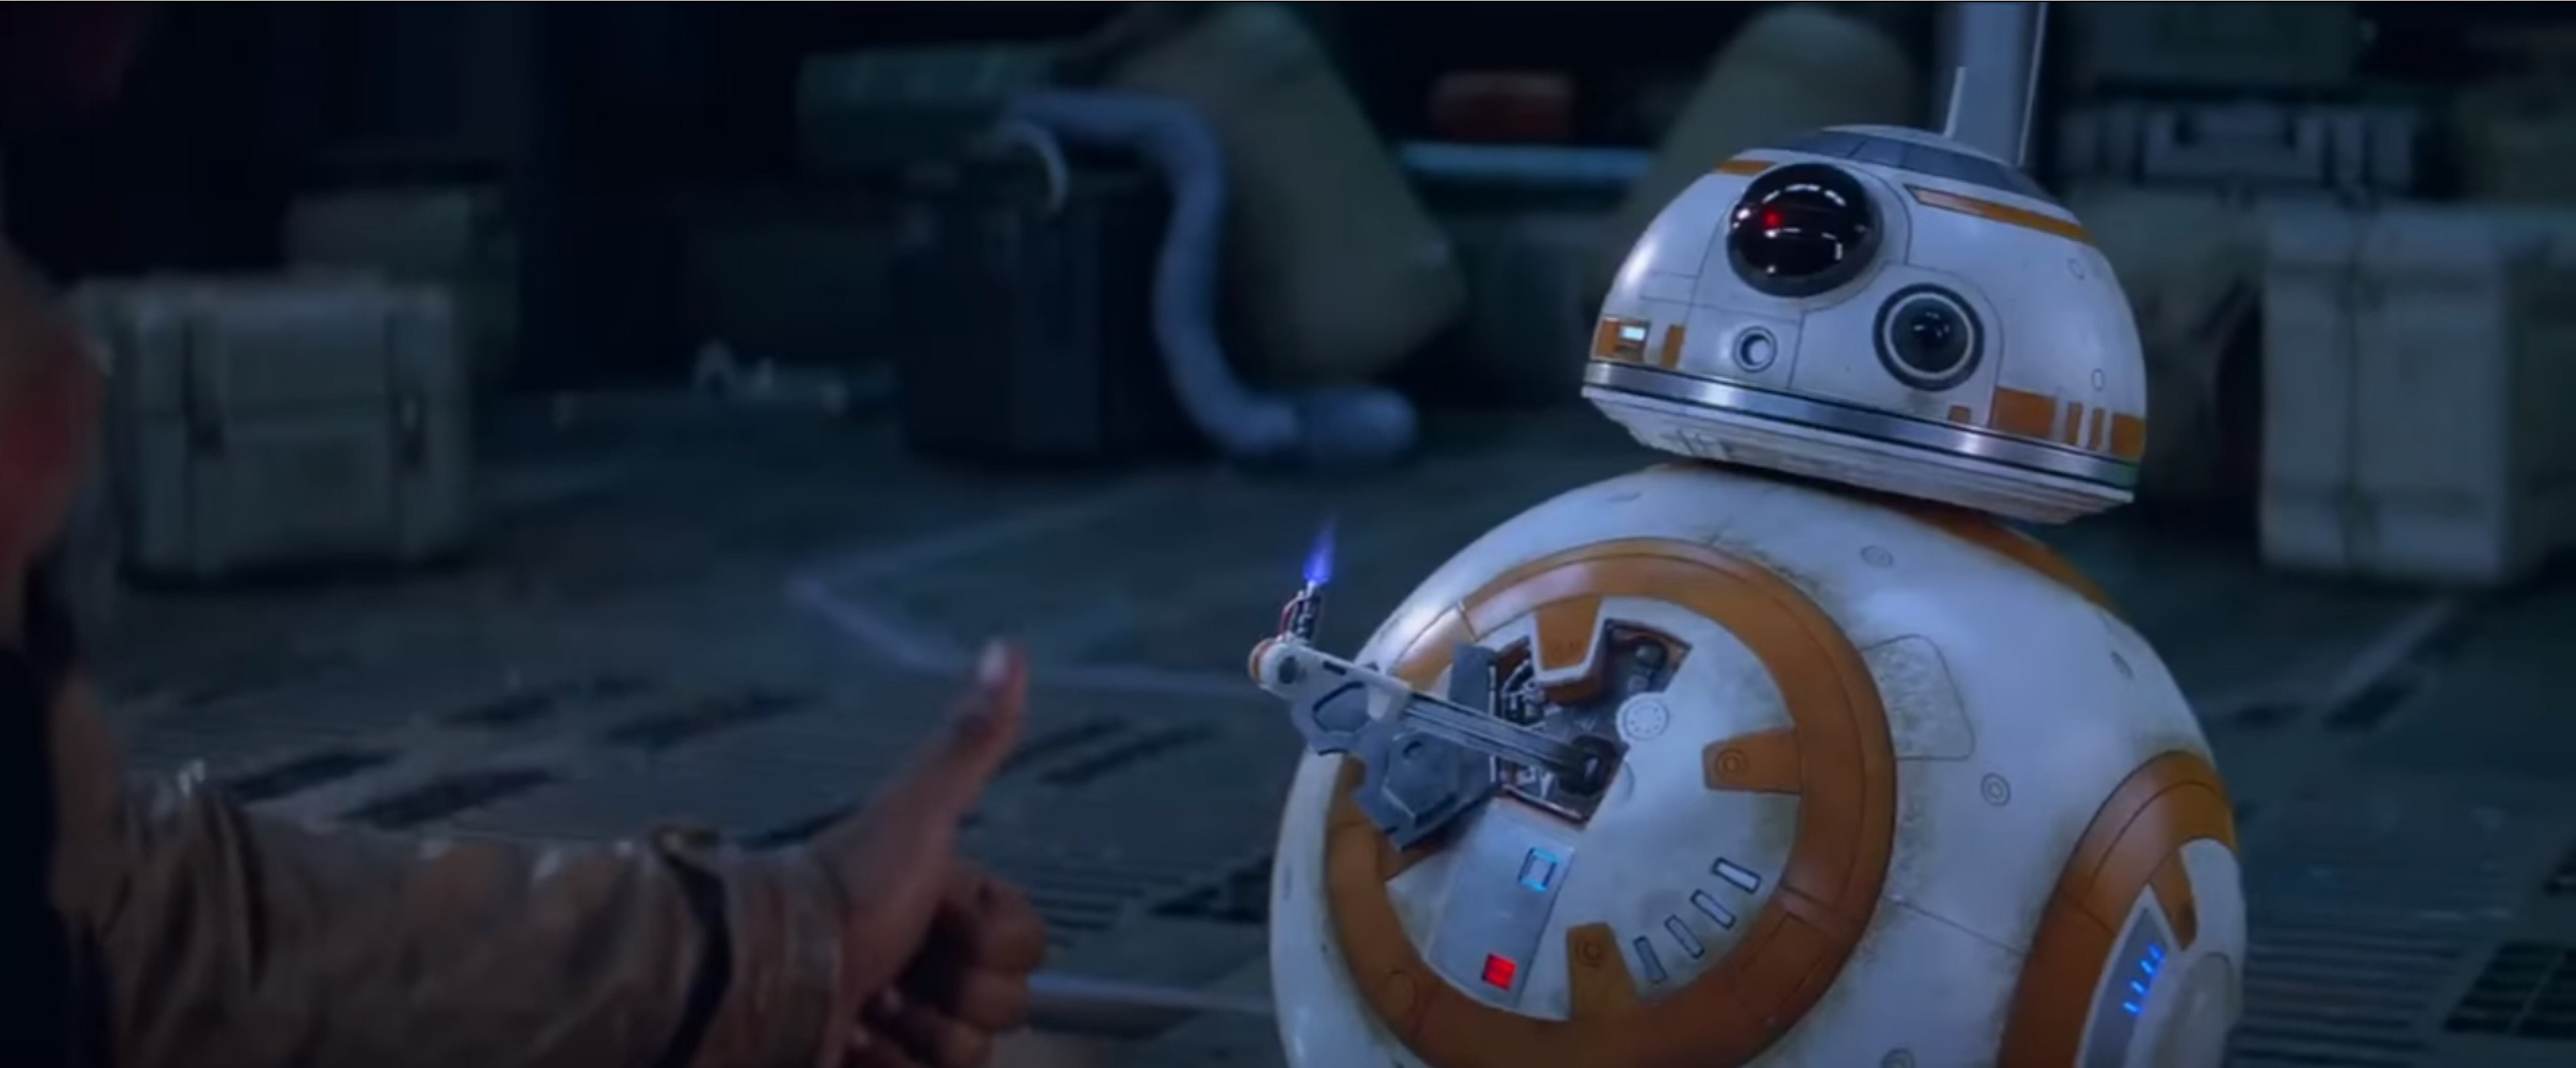 Force Awakens contributions – star wars: the force awakens bb8 thumbs up